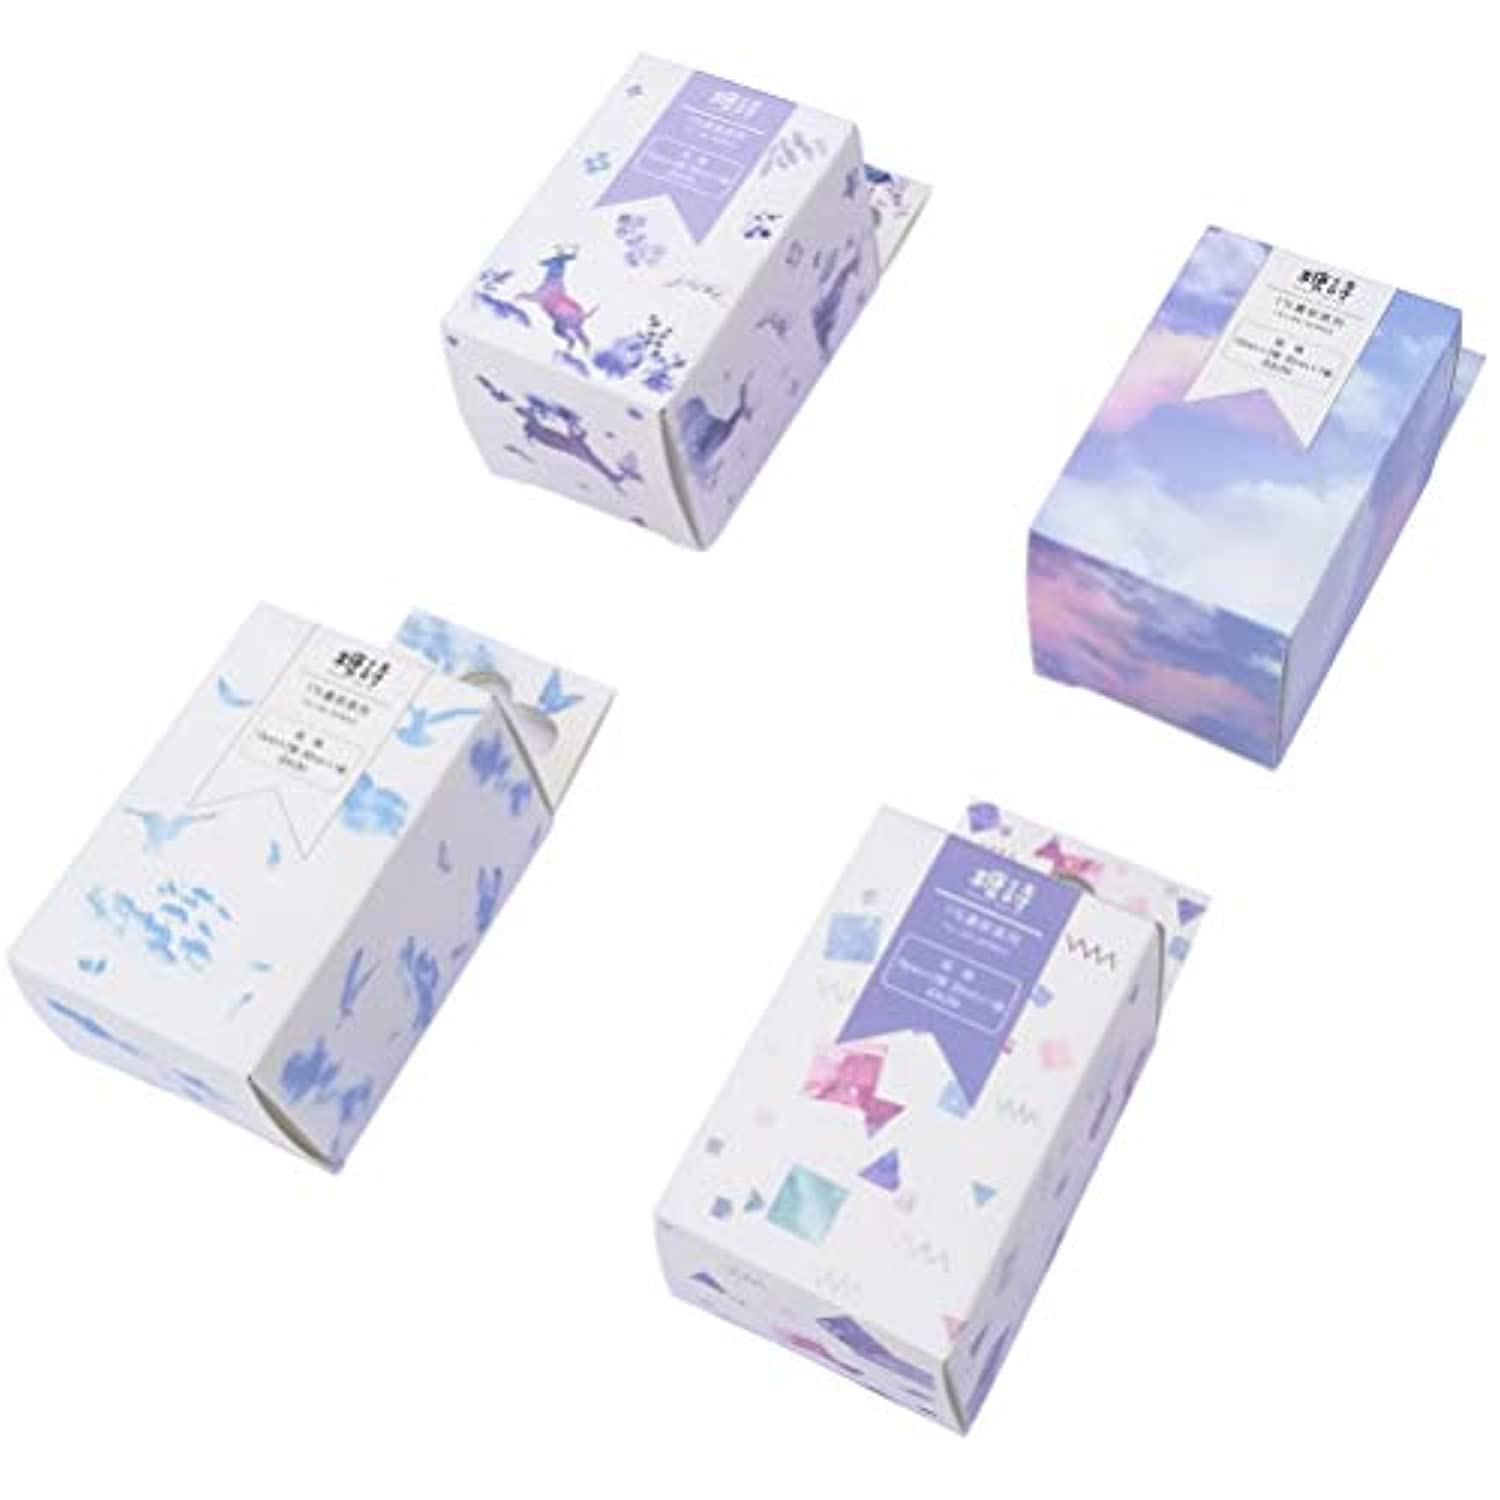 Fantacy Washi Masking Tape Set (4 Box, 12 Rolls) Colorful Sky Star Bird Castle Sparkling Water Surface Planet Balloon Deer Whale Stationery Scrapbook Diary Album Art Project DIY Label vximvj0893467